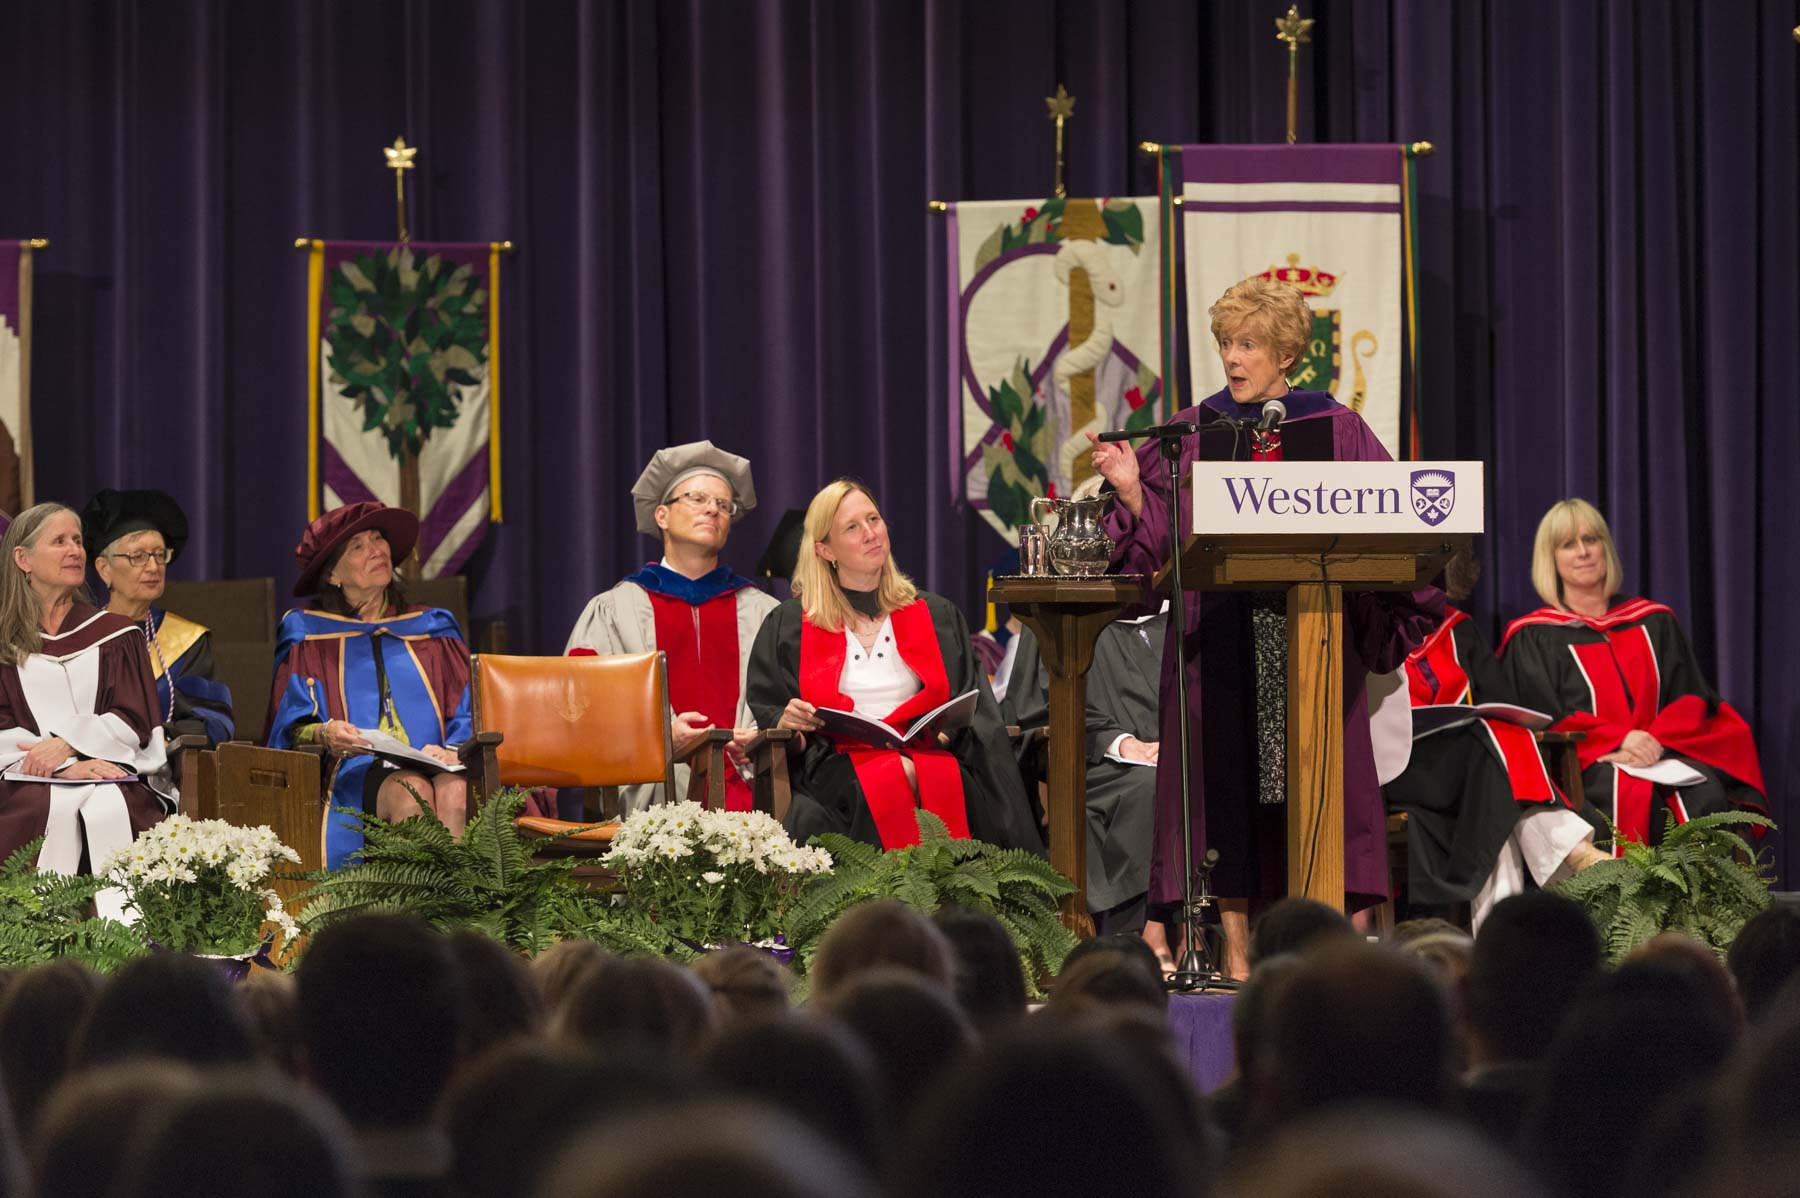 """As lawyers and nurses, you will be among the most respected persons in your communities,"" said Her Excellency. ""You will be leaders. In your professions, you will be able to support, advise, direct and encourage people with mental health issues throughout your careers. And many of you will be able to participate in treatment, research, policy development and even legislation which, like the changes I saw back in the 1970s, will redefine how Canadians think about and care for people who society once looked at with judgment and fear. I thank you now for using your education and intellect to help make a difference."""